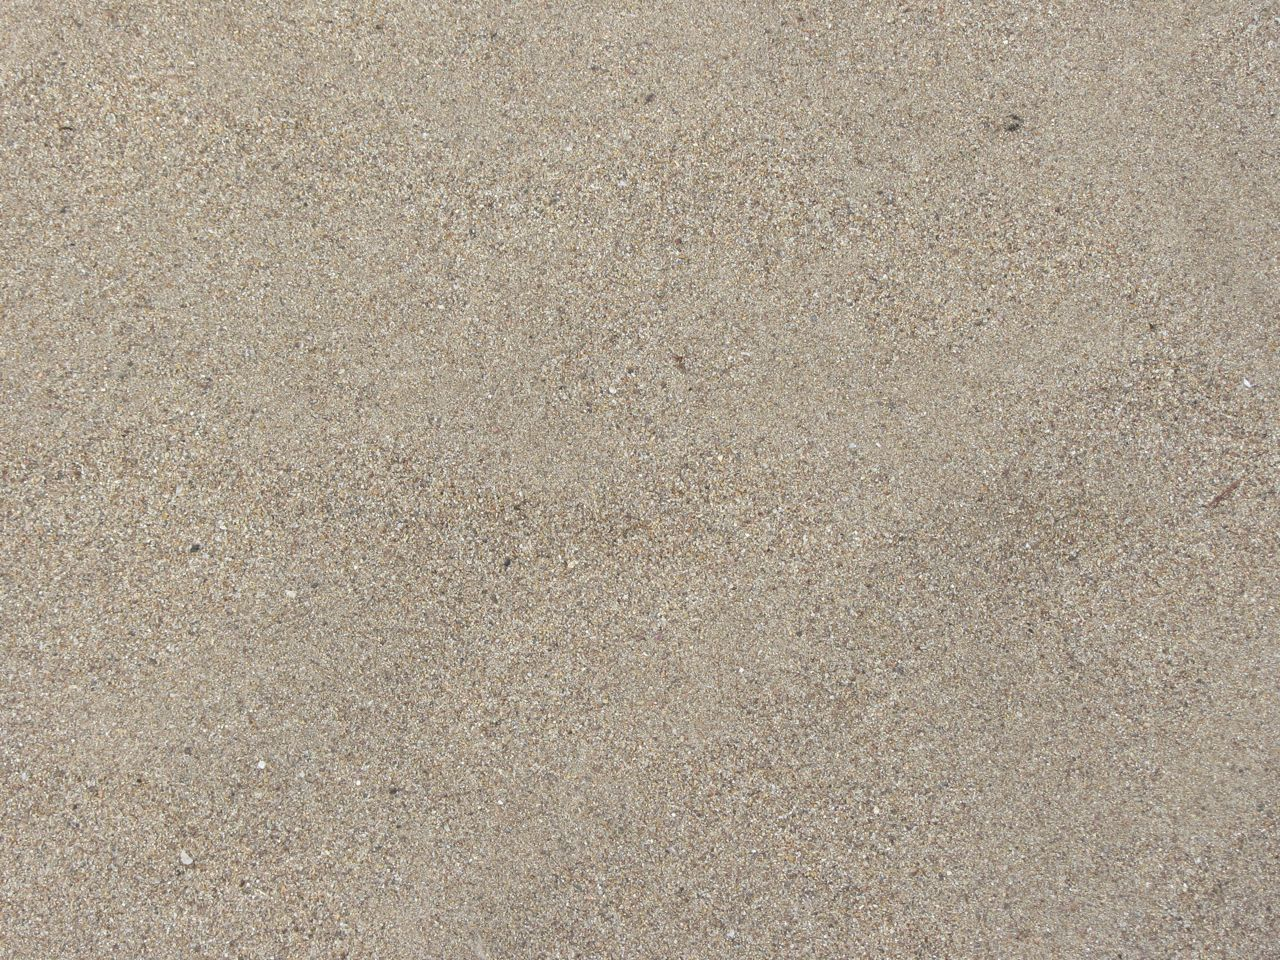 Recent floods left a fresh coverage of fine granitic sand.